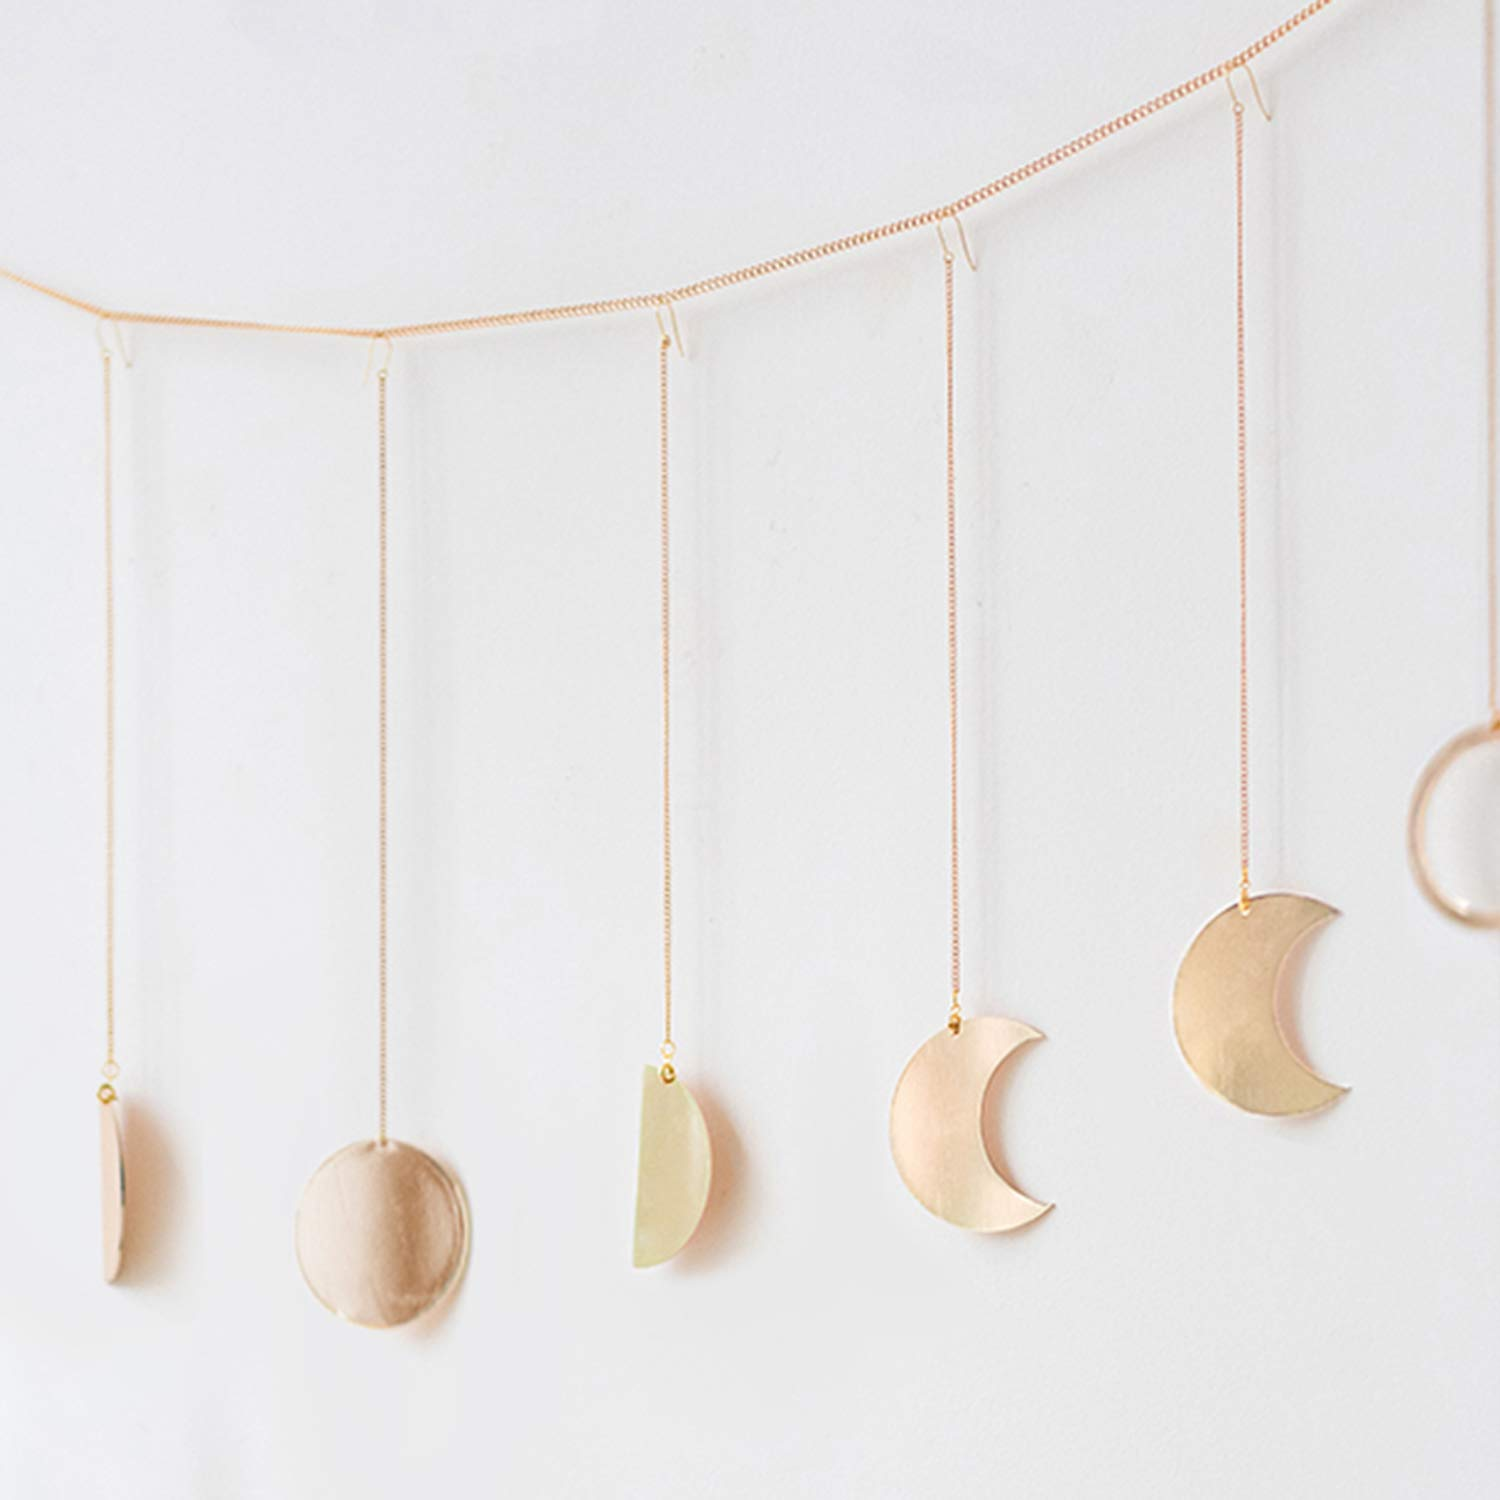 Ling's moment Original Boho Gold Shining Moon Phase Wall Hanging Ornaments Moon Hang Art Room Decor for Wedding Retro Style Home Wall Decorations